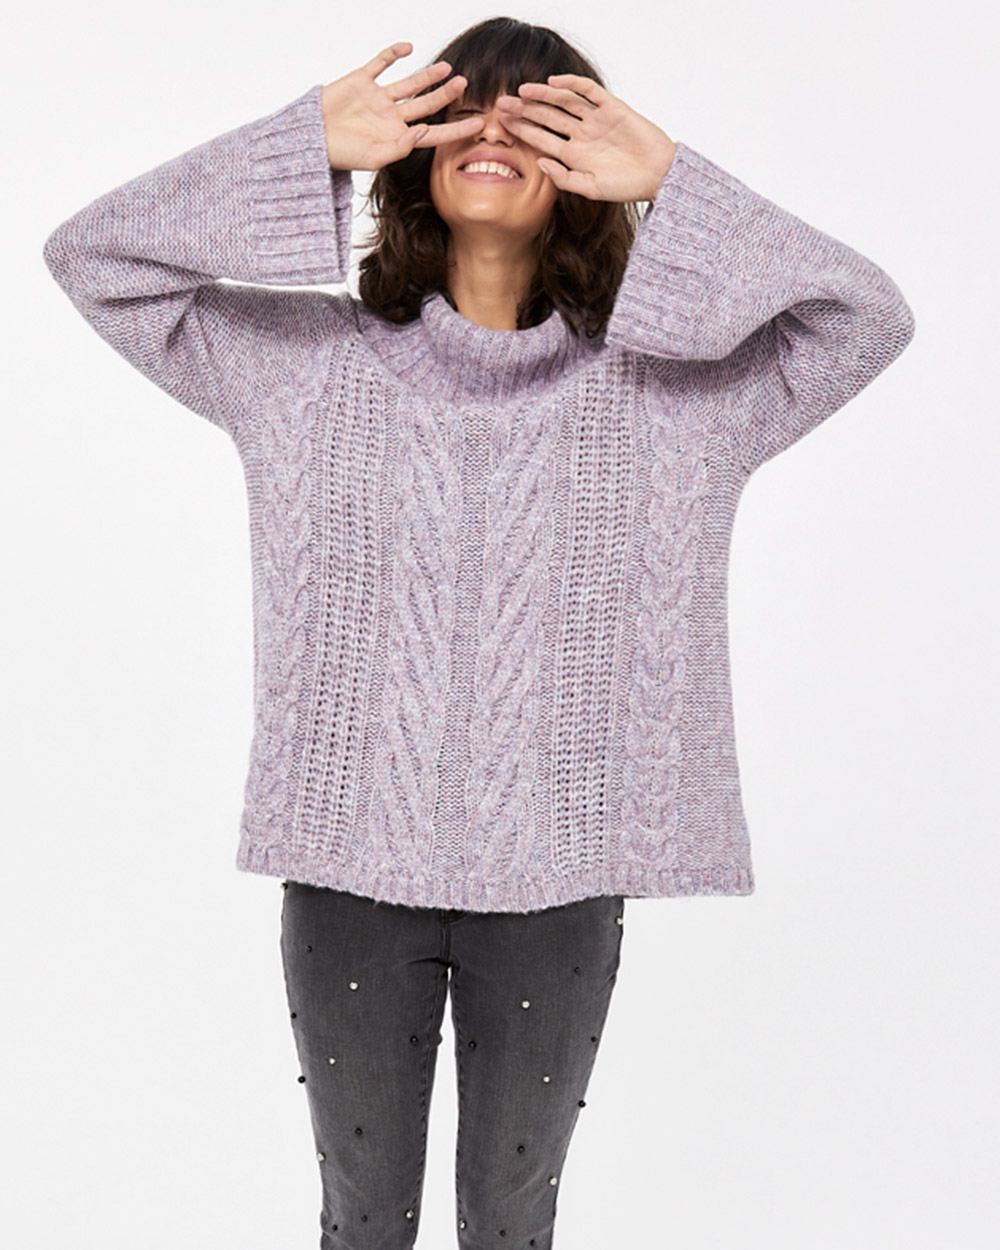 Pagode Sleeve Turtleneck Sweater